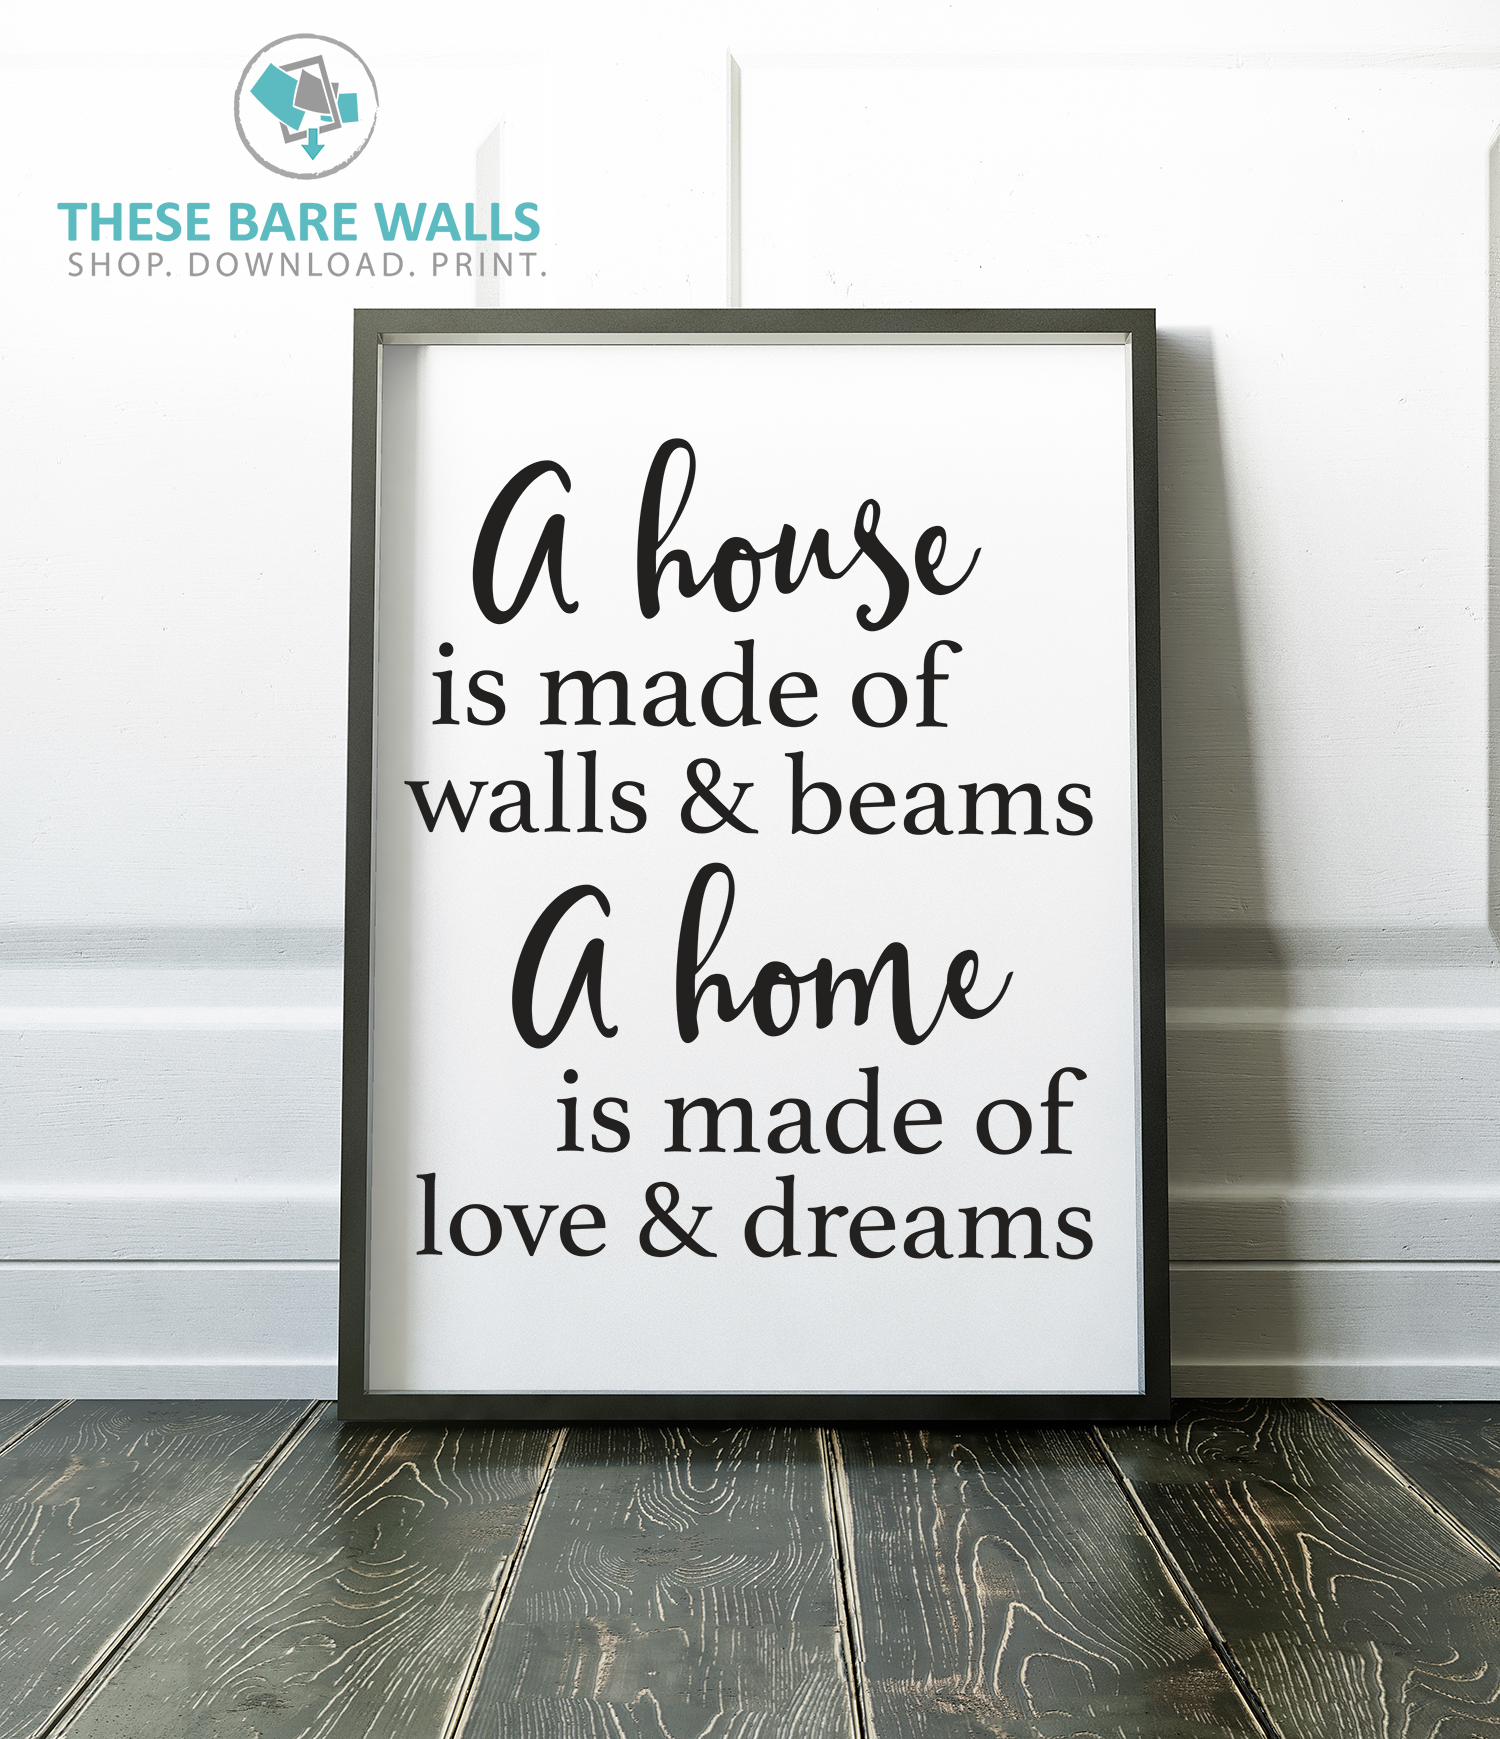 Quotes About Houses A House Is Made Of Walls & Beams A Home Is Made Of Walls & Dreams